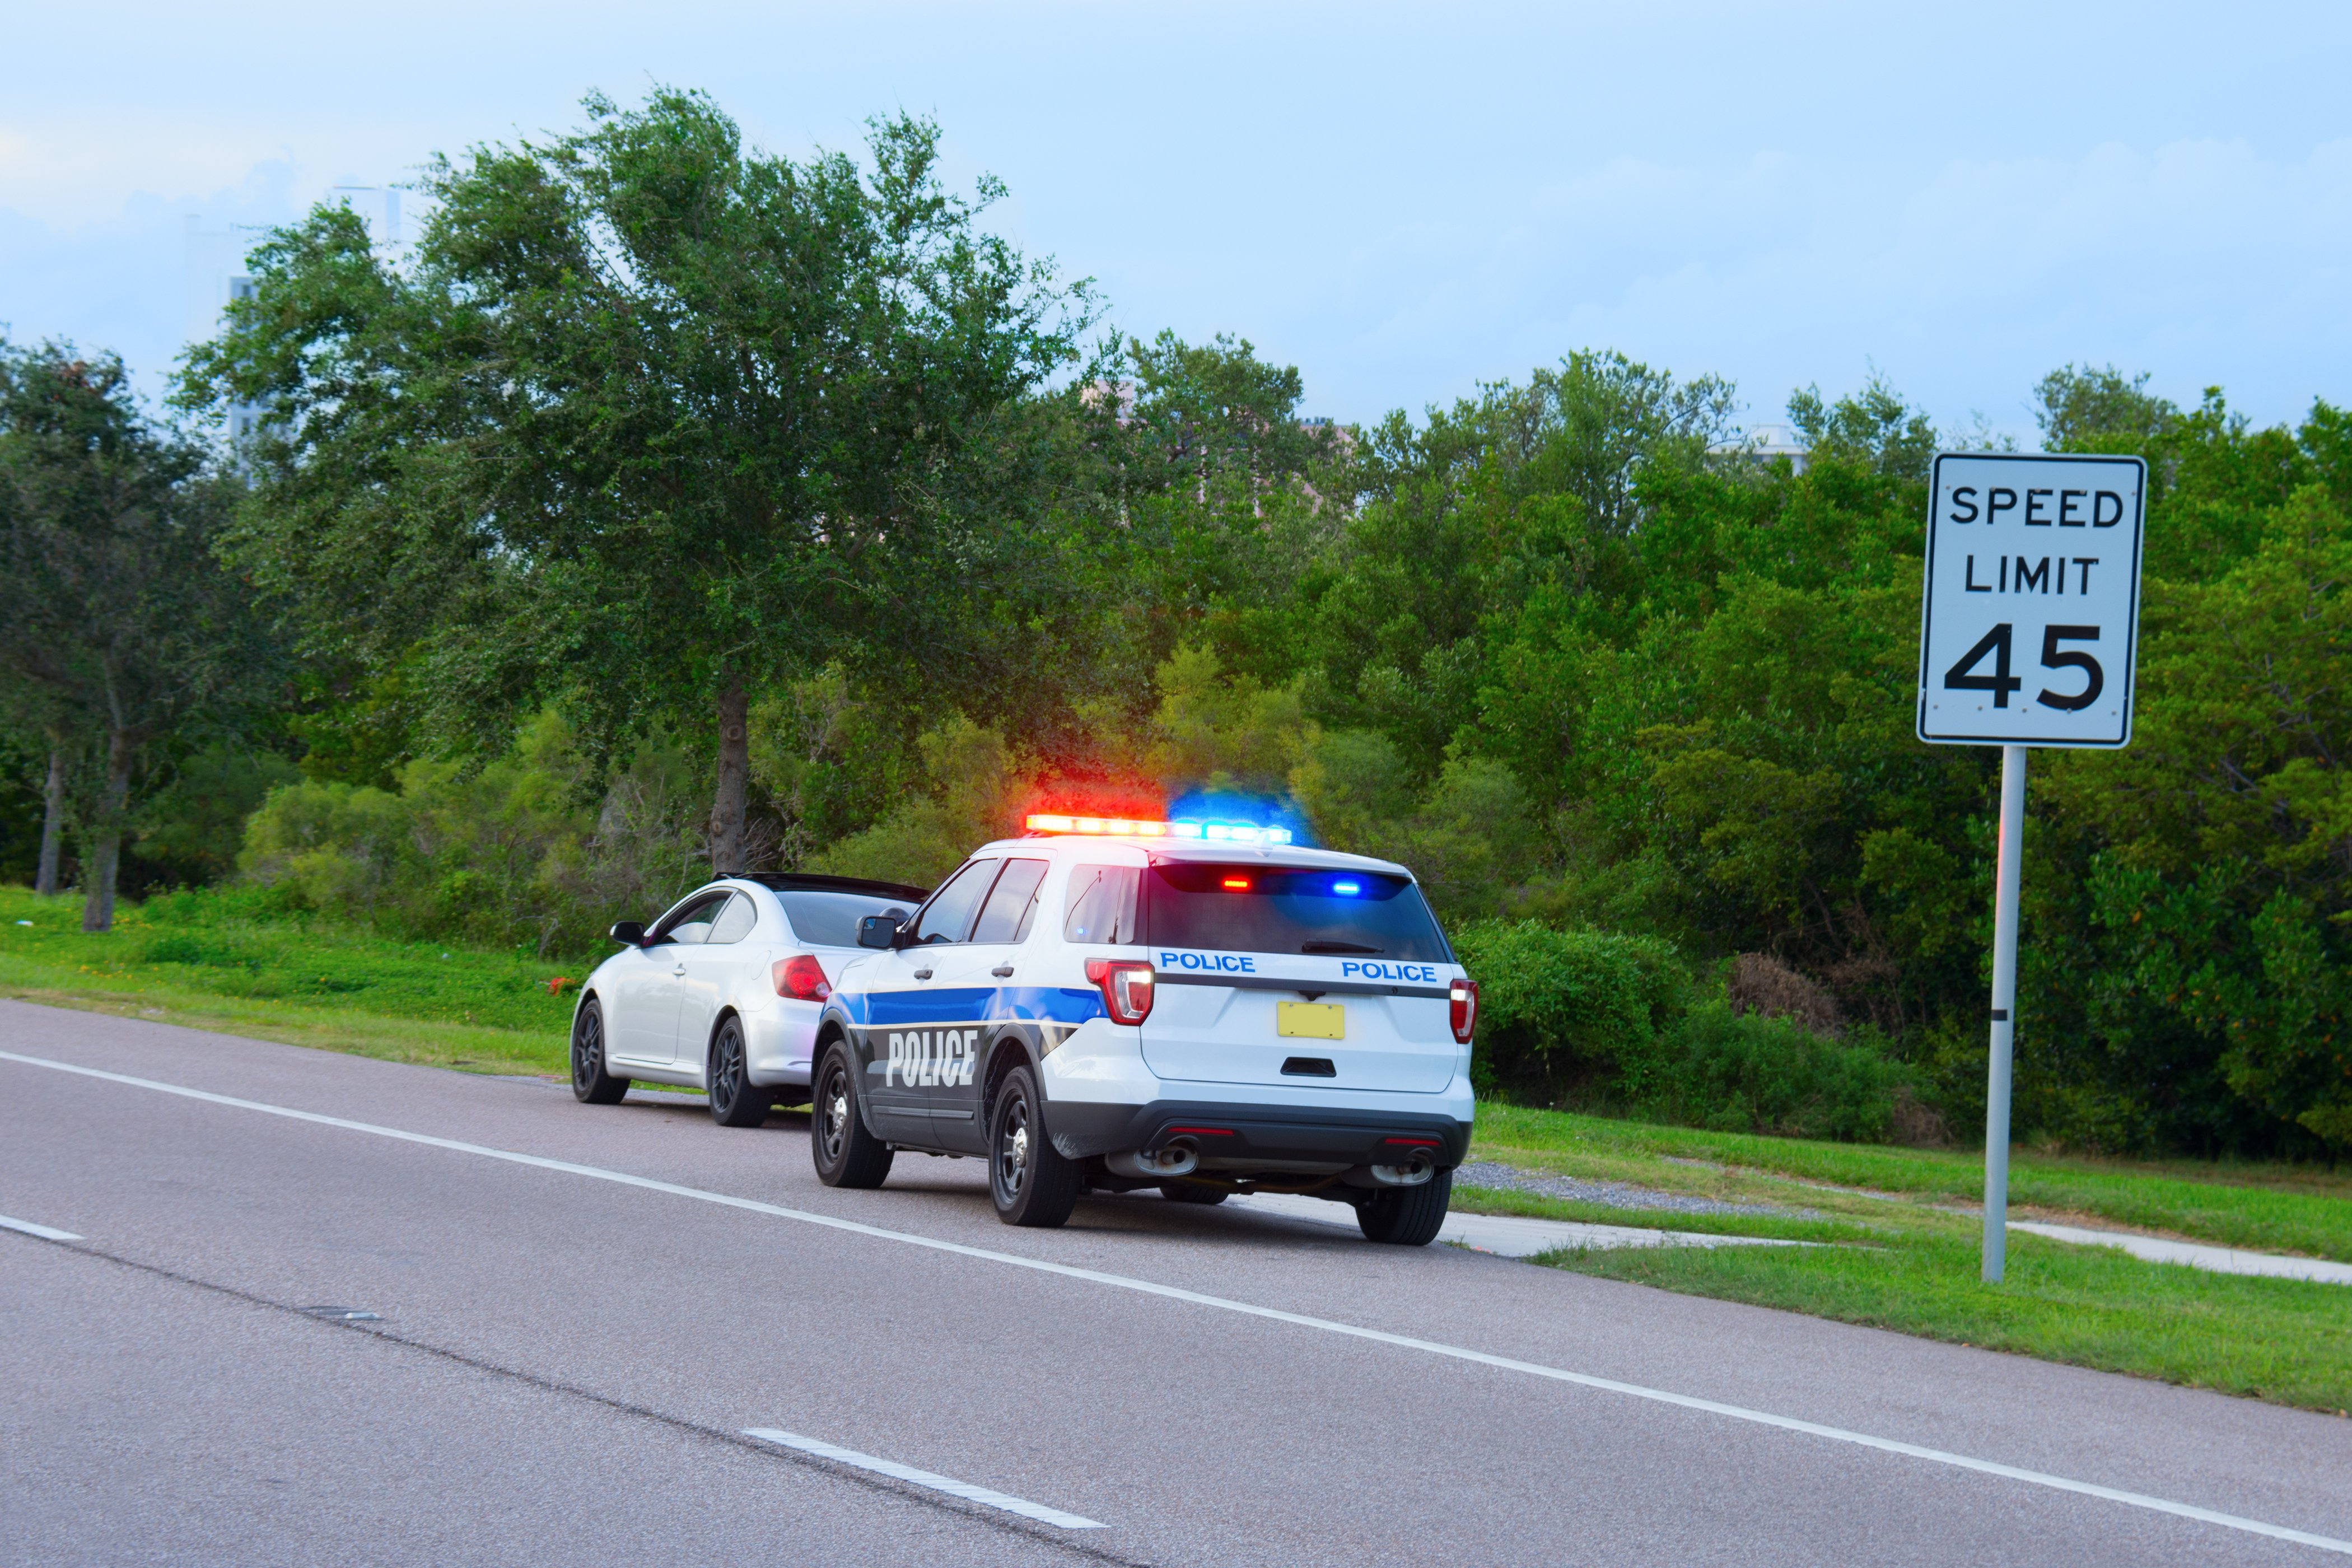 A police vehicle pulling over a car on the side of the road. | Photo: Shutterstock